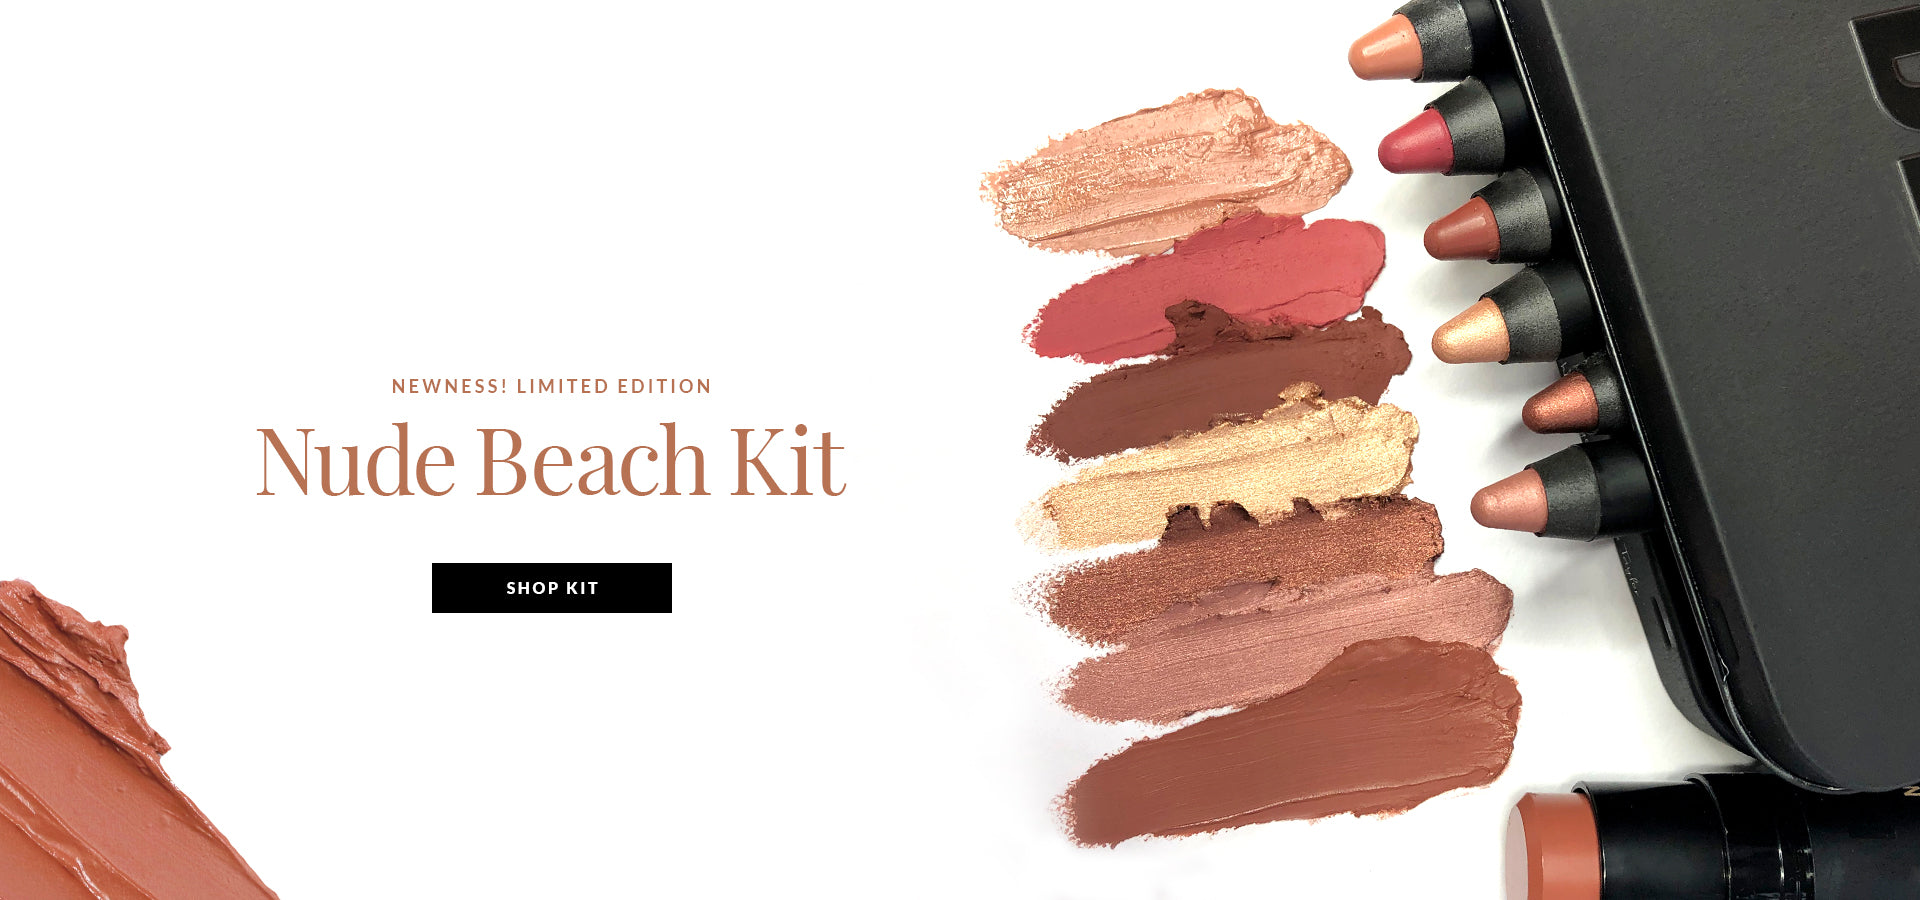 Nude Beach Kit